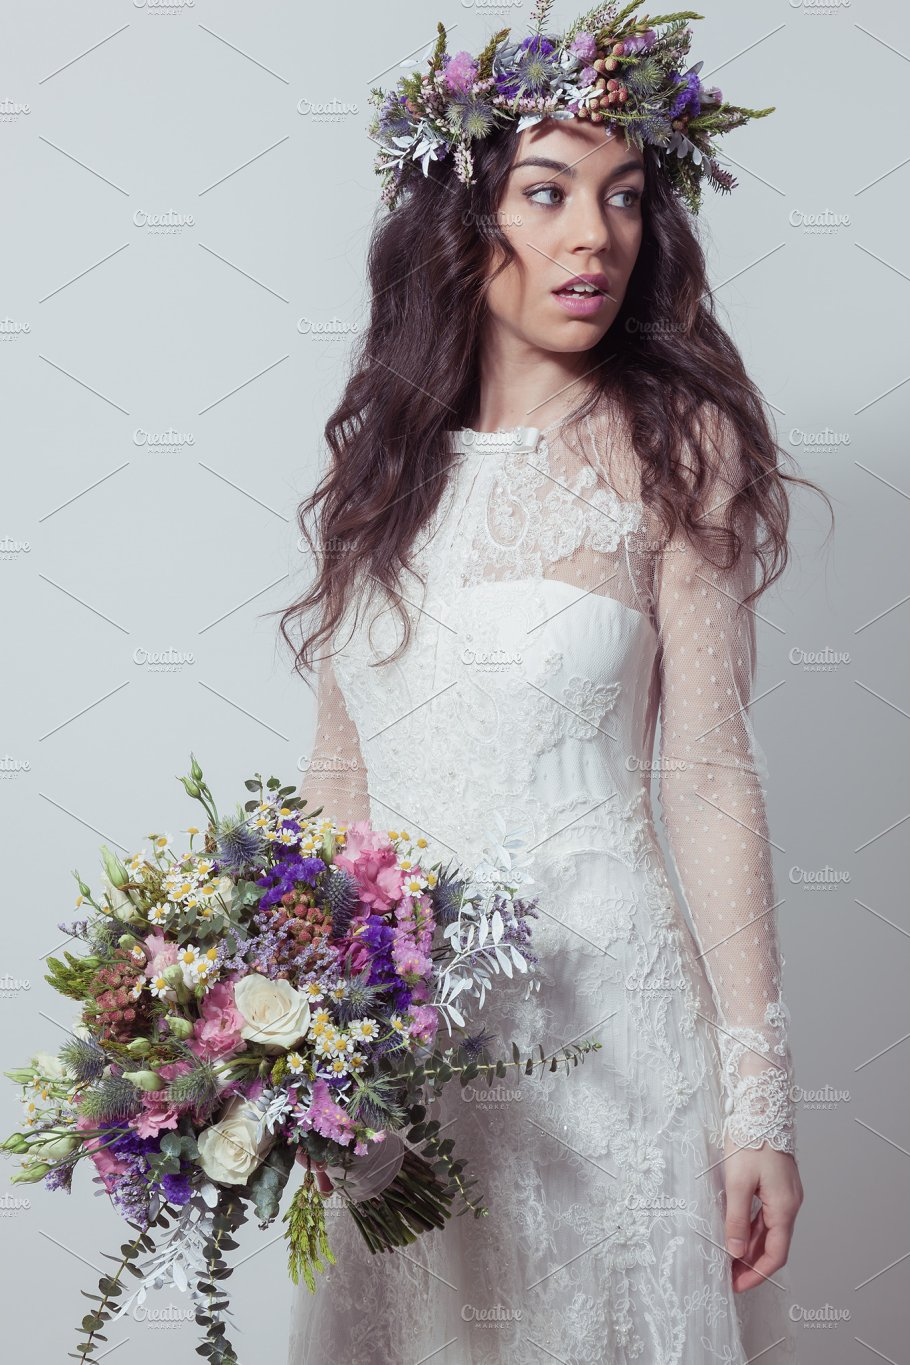 Bride with bouquet and flower crown people images creative market bride with bouquet and flower crown people izmirmasajfo